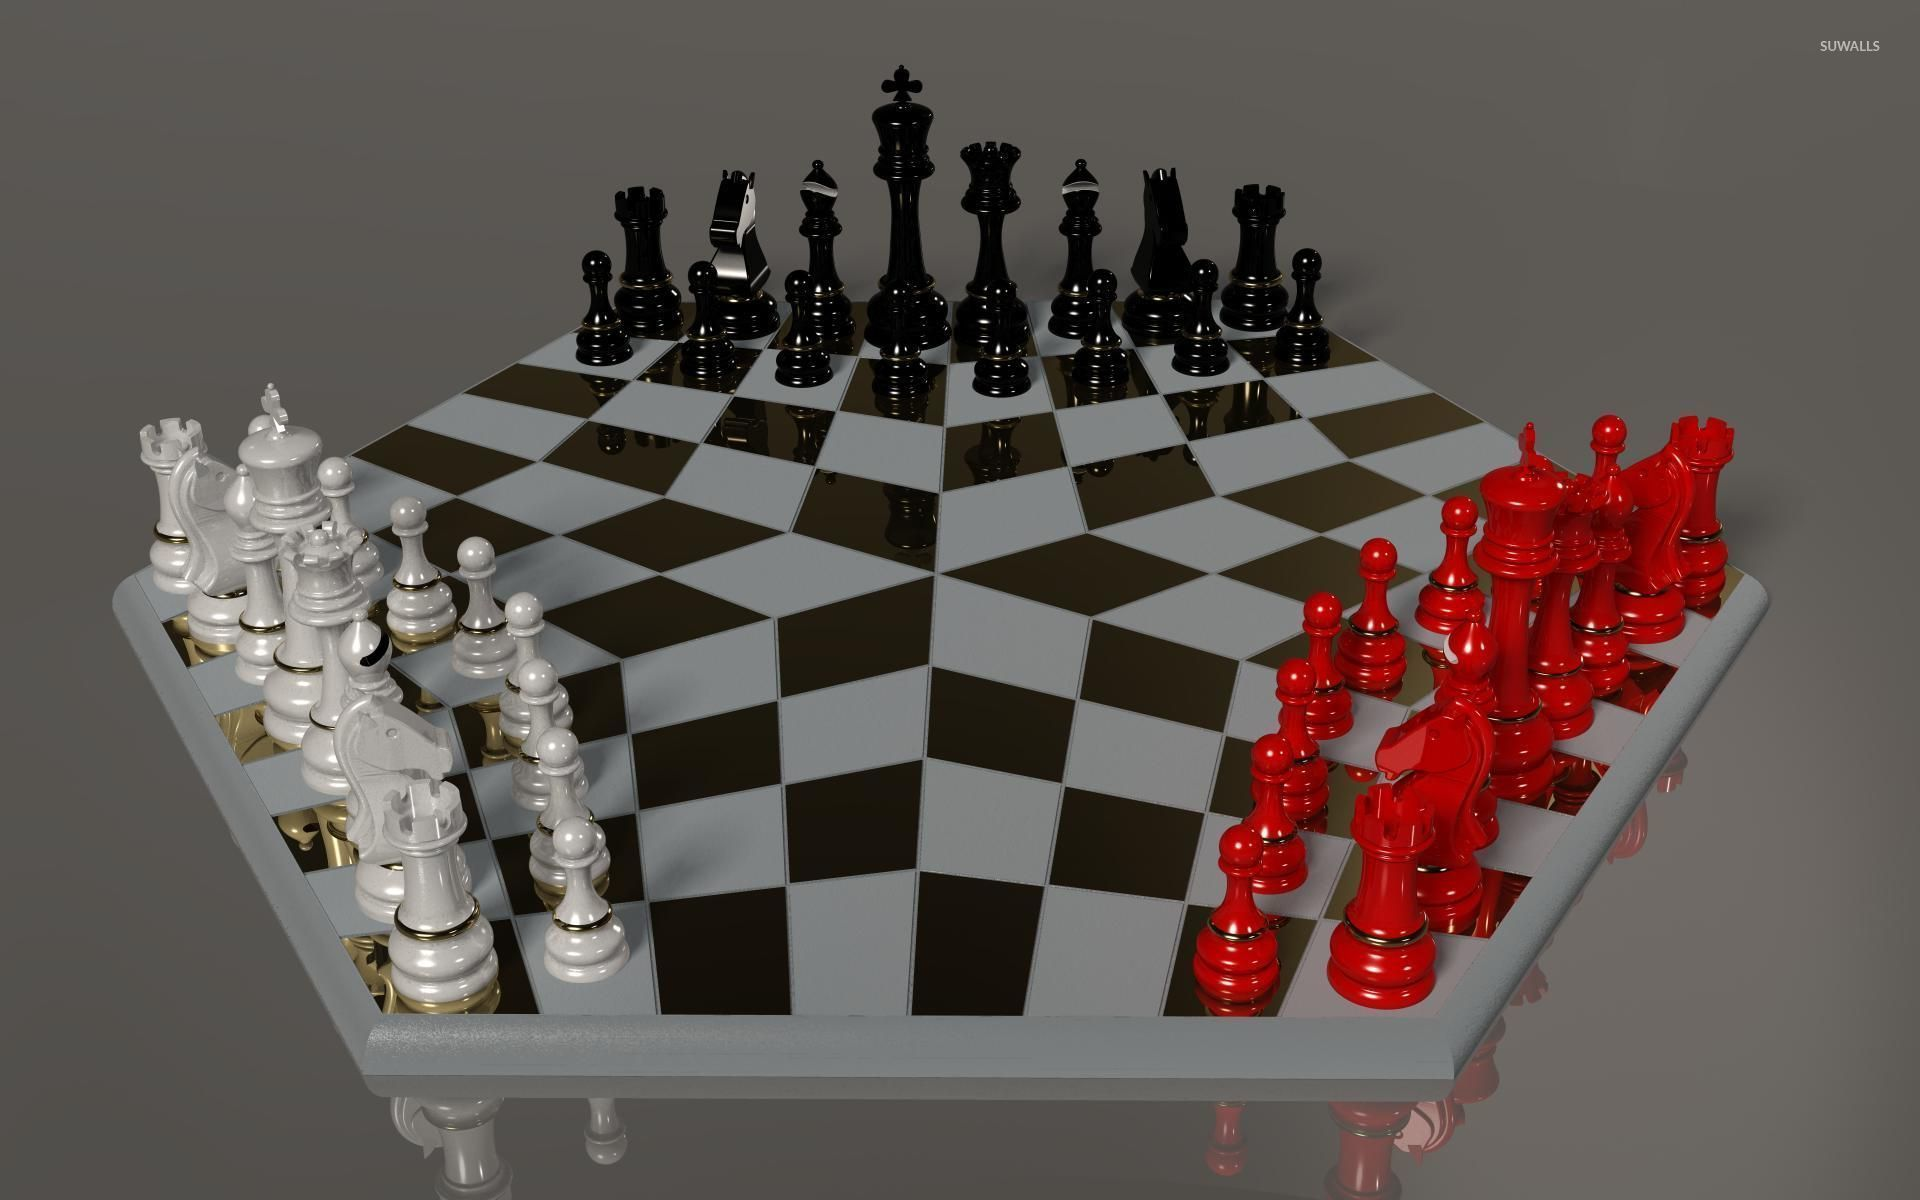 Black White And Red Chess Pieces Wallpaper